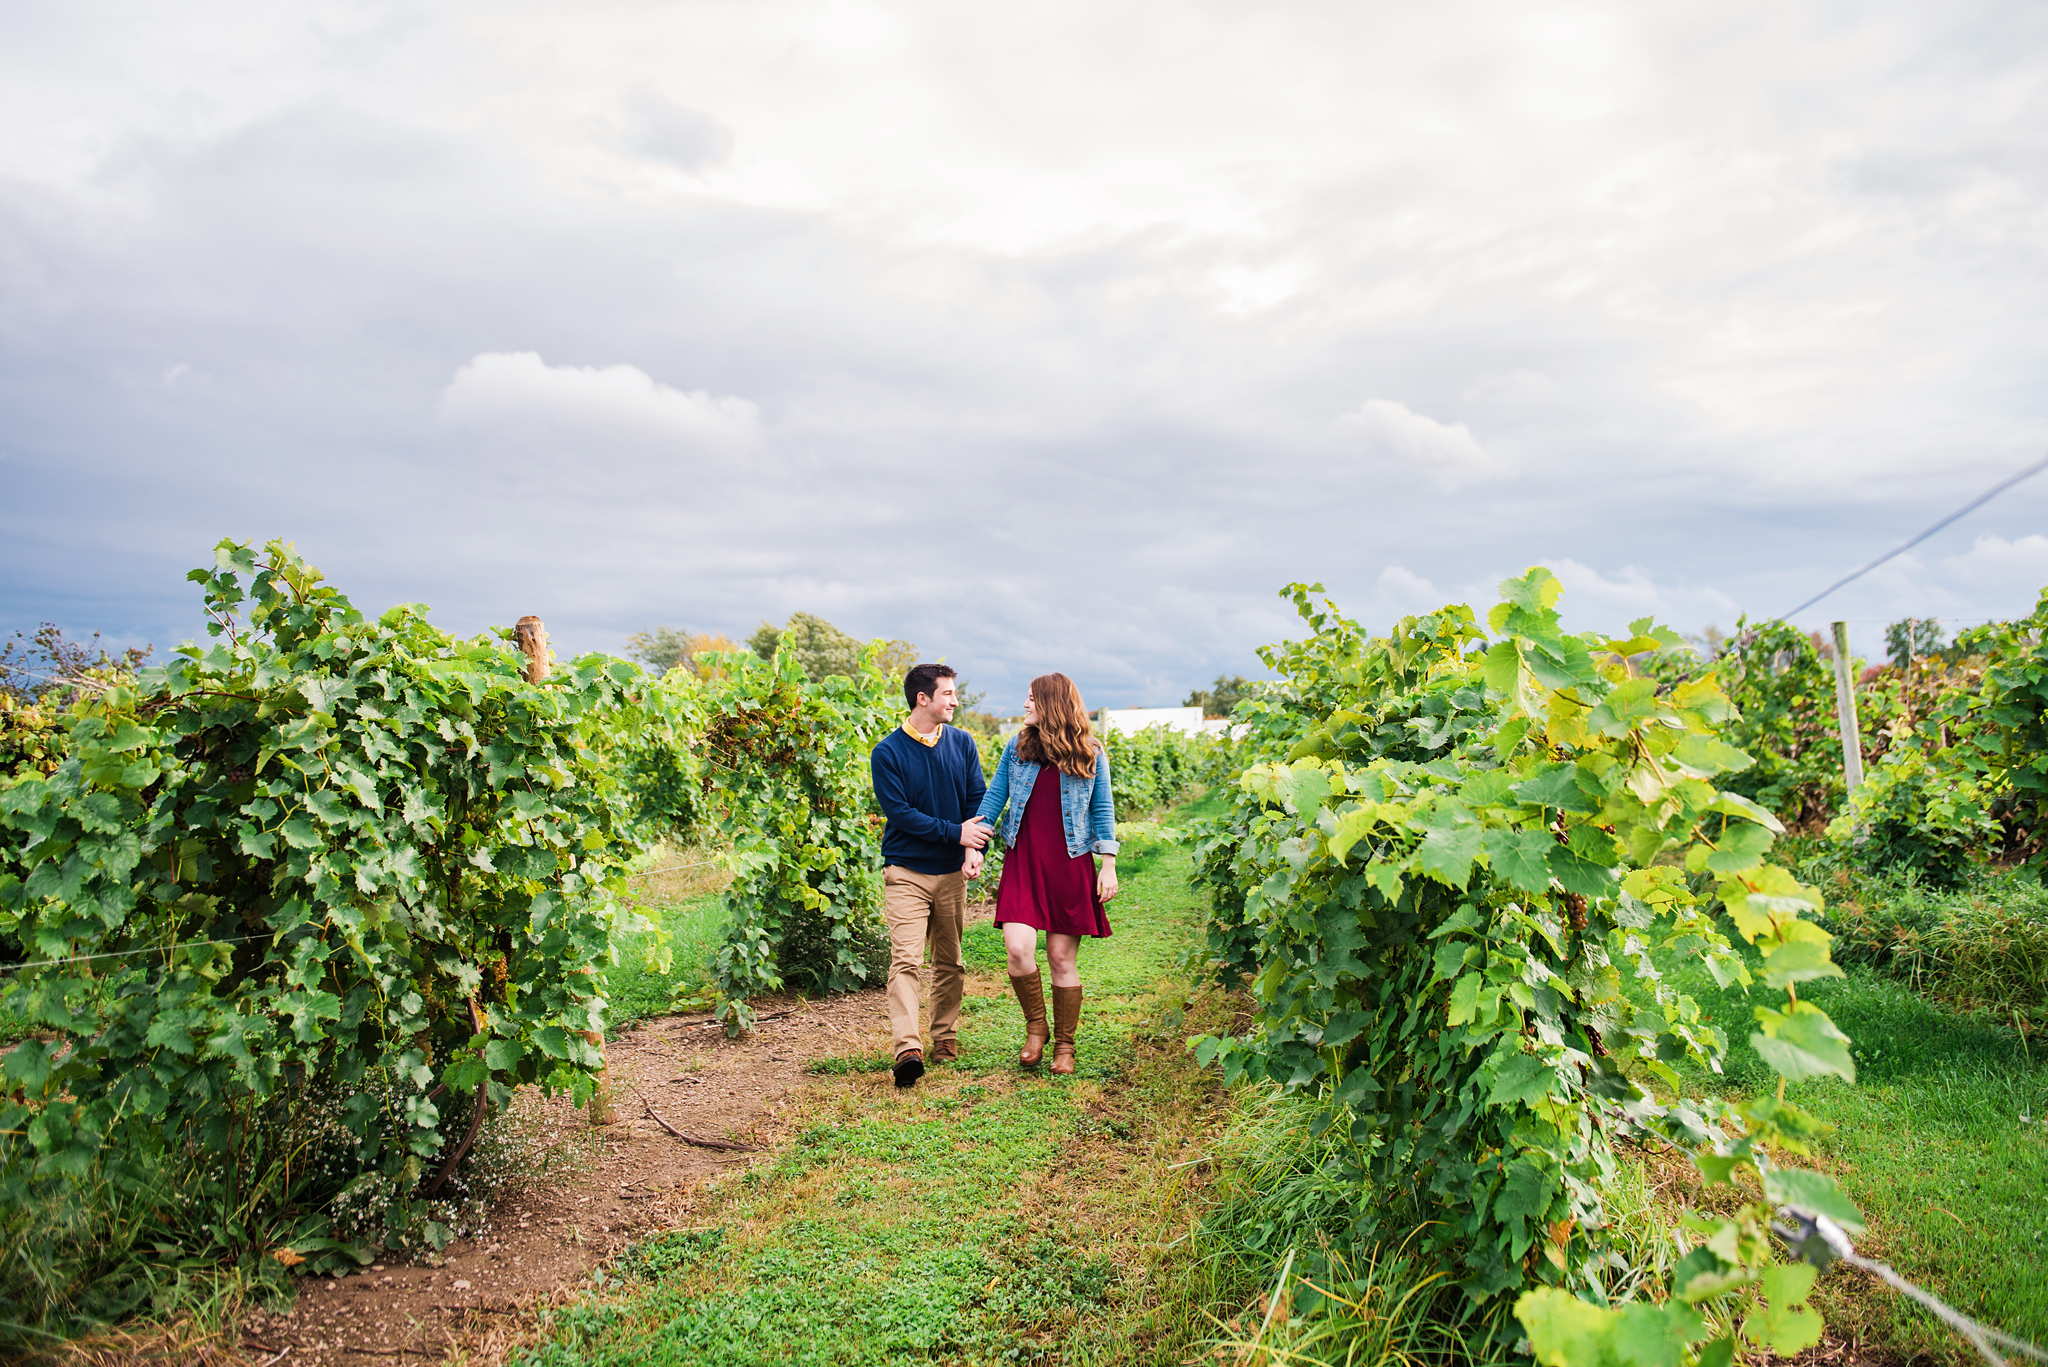 Becker_Farms_Buffalo_Engagement_Session_JILL_STUDIO_Rochester_NY_Photographer_DSC_4685.jpg